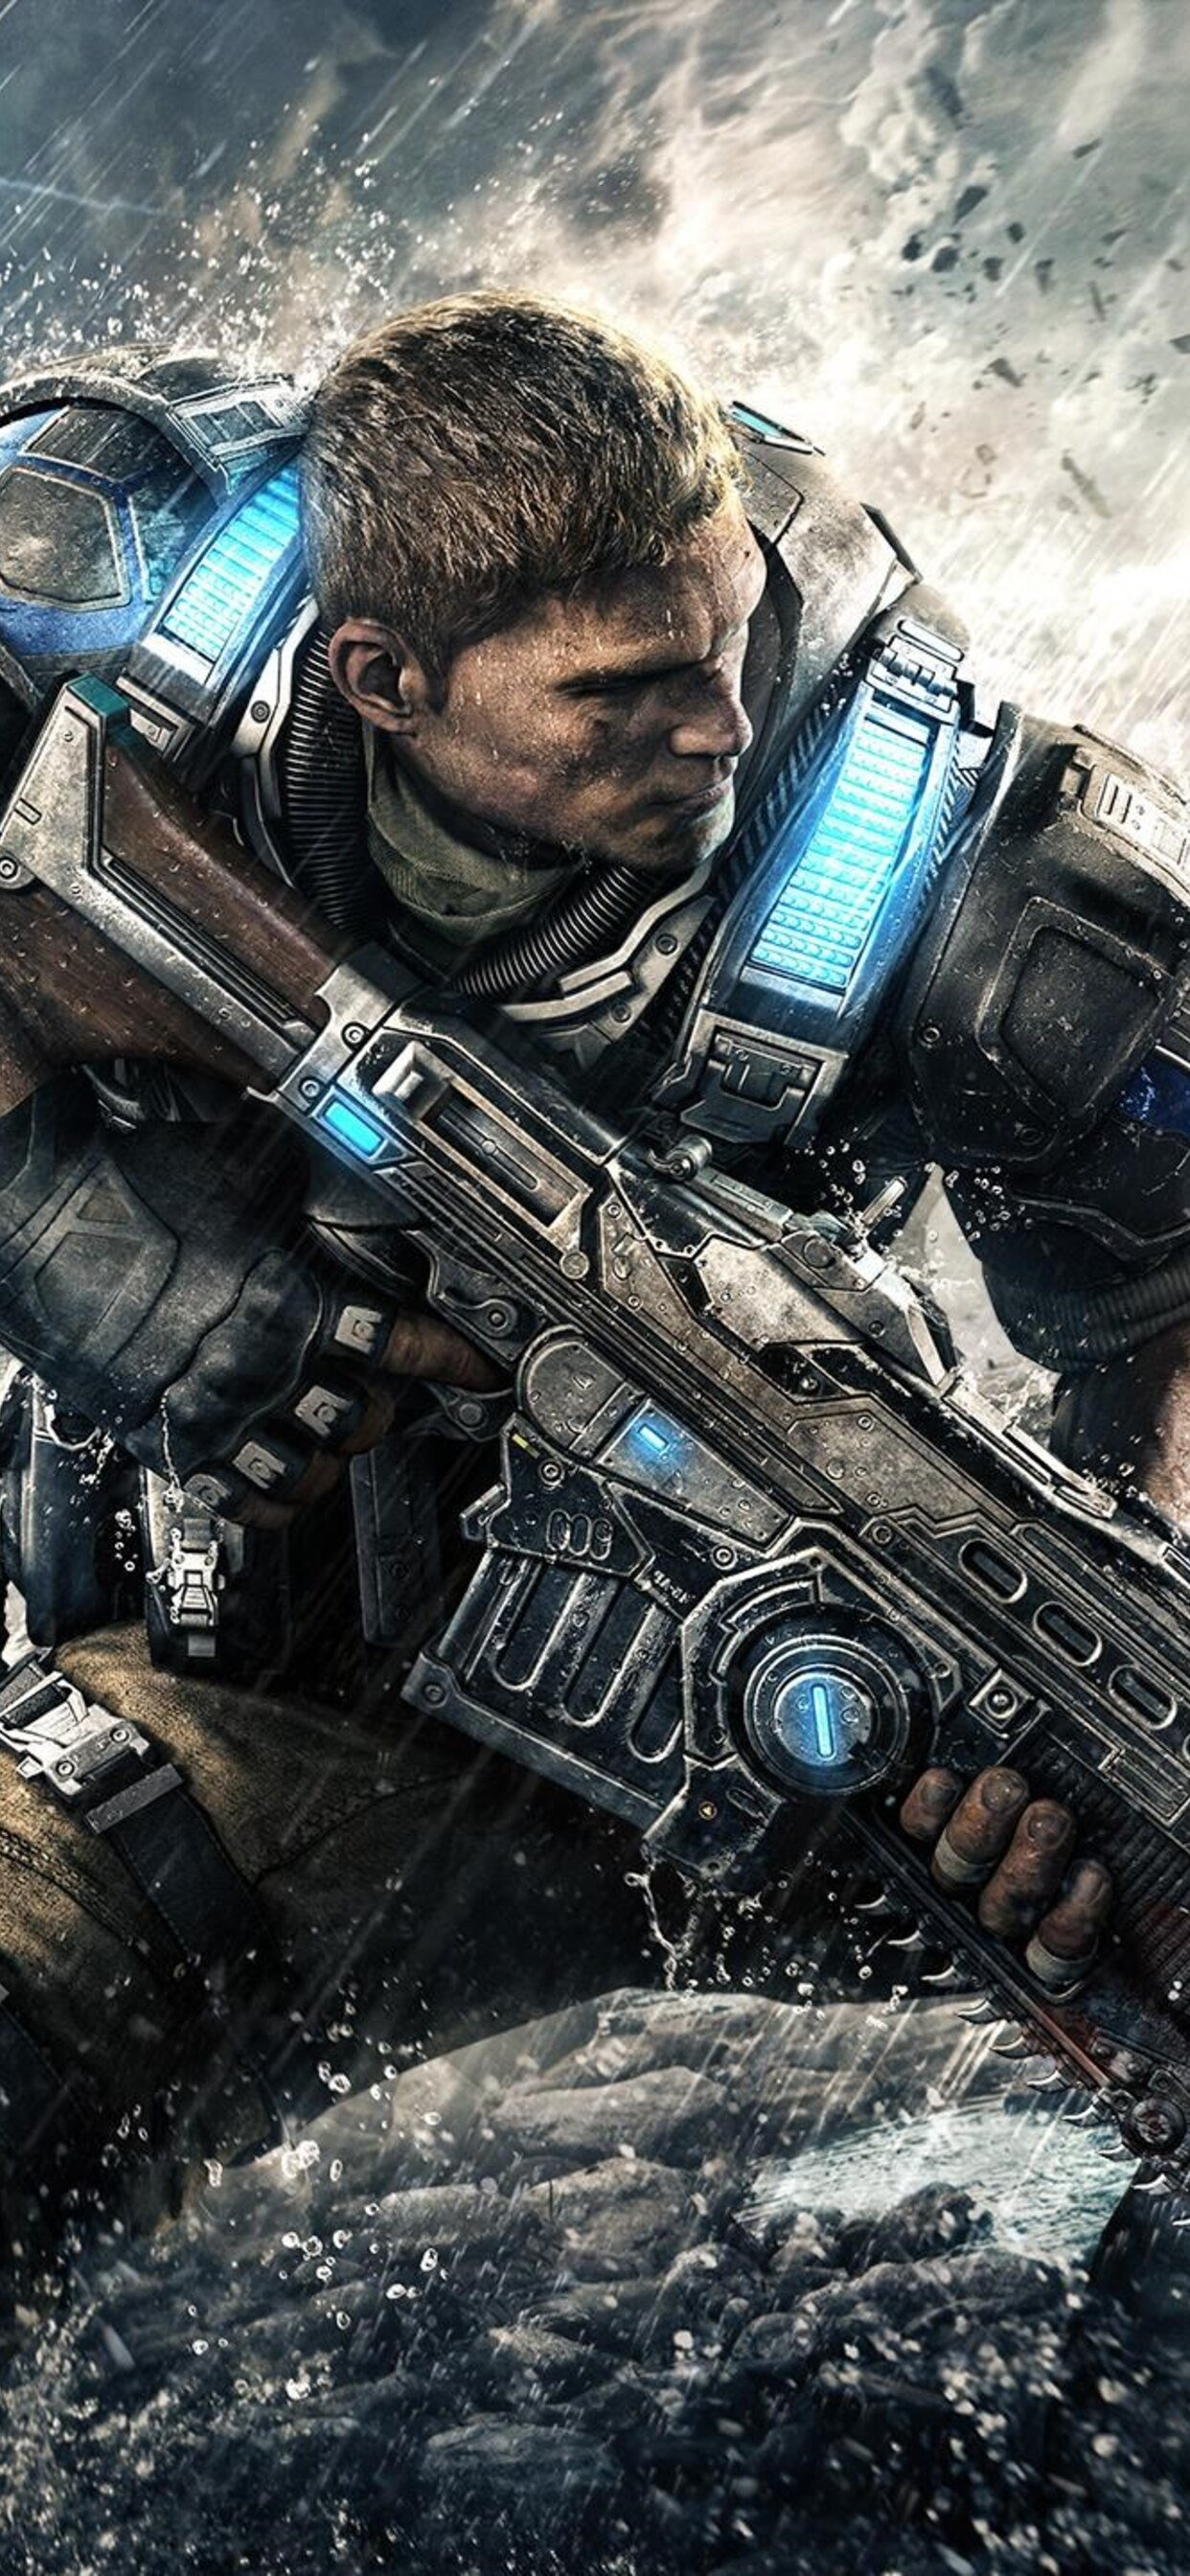 1242x2688 Gears Of War 4 Hd Iphone Xs Max Hd 4k Wallpapers Images